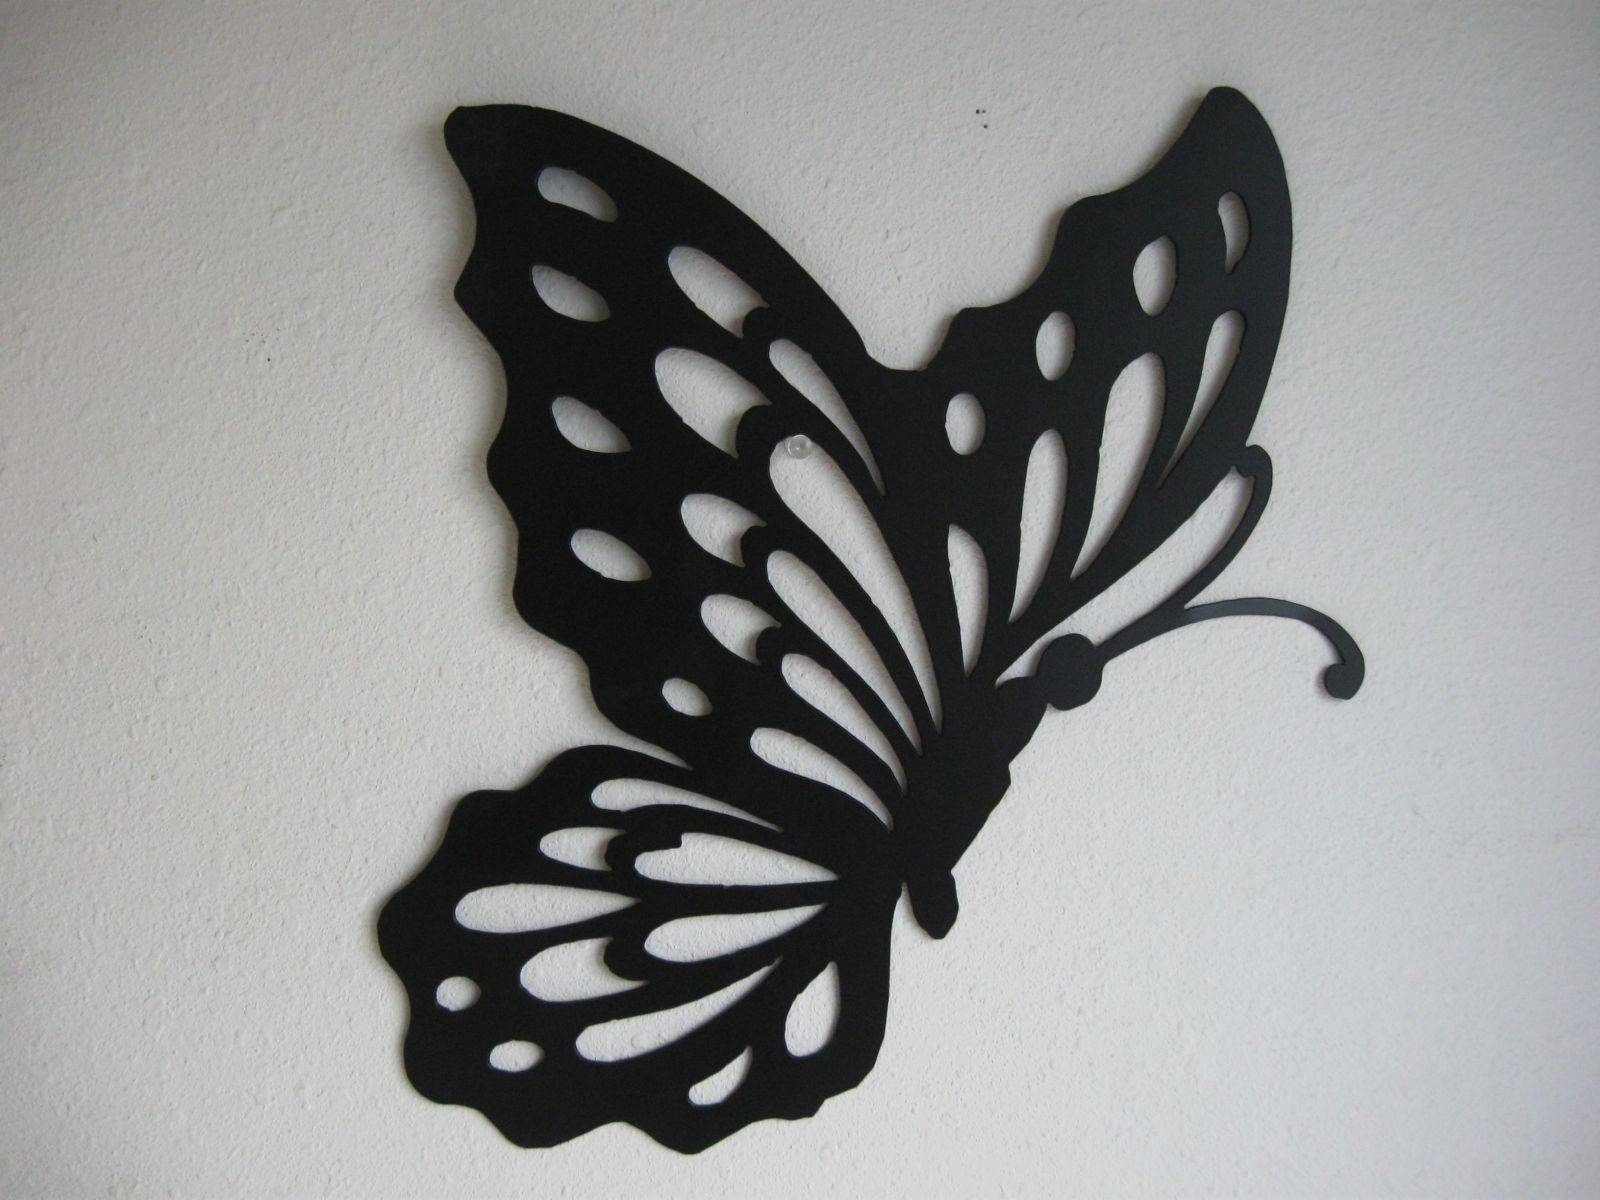 Metal Butterfly Wall Decor — Creative Home Decoration Inside 2018 Butterfly Metal Wall Art (View 13 of 20)